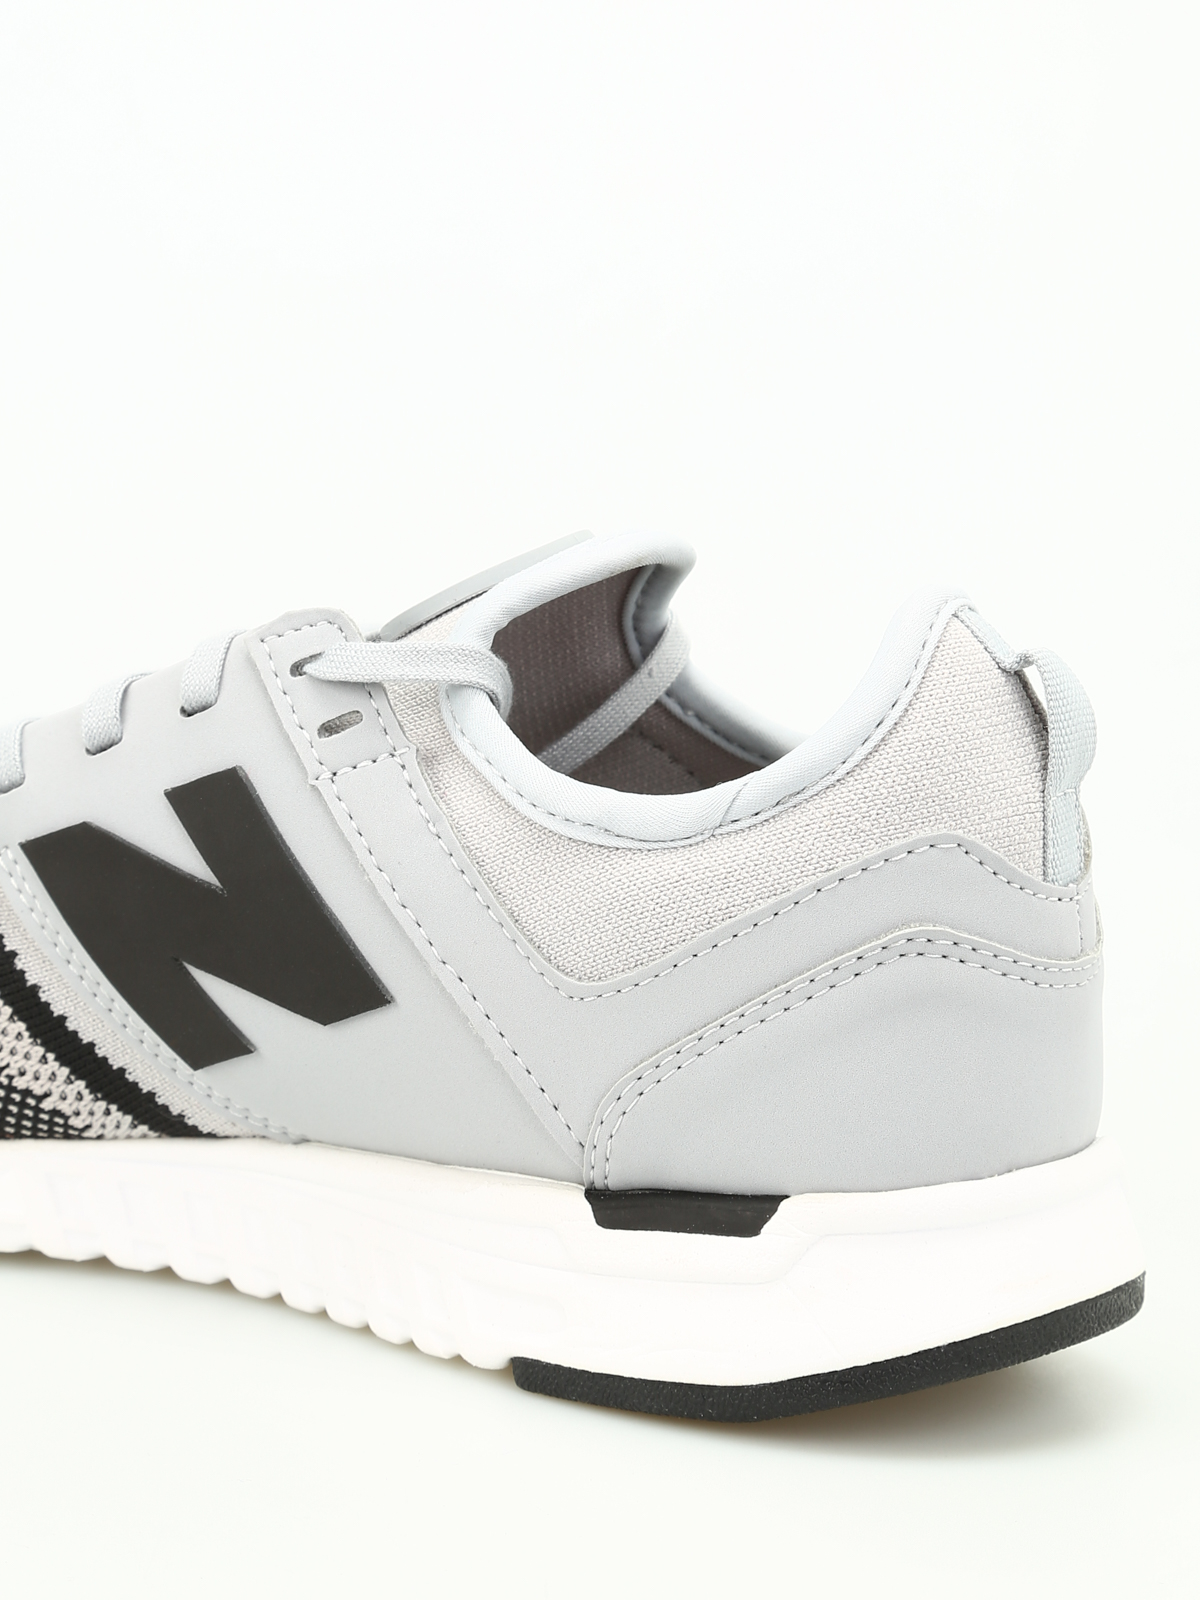 New Balance 247 Technical Knit Sneakers cxNcECdEW2